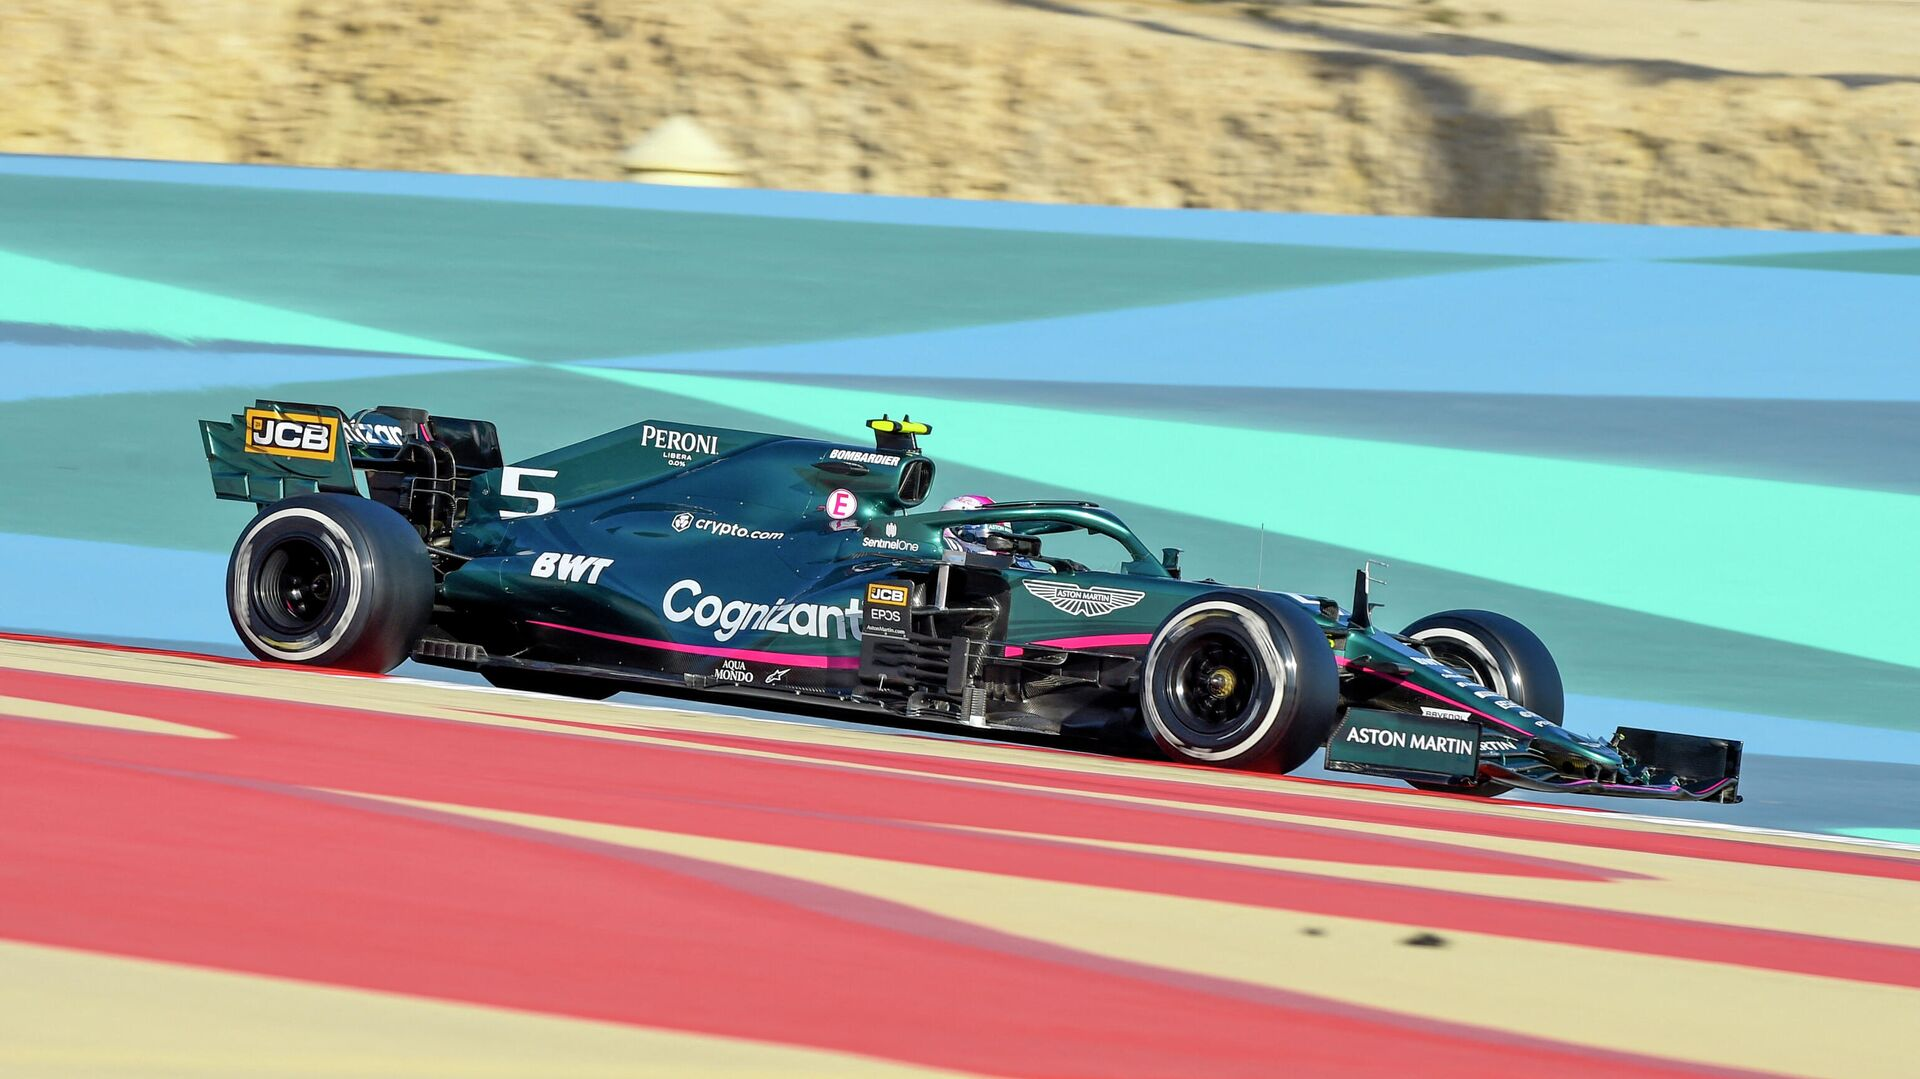 Aston Martin's German driver Sebastian Vettel drives during the third day of the Formula One (F1) pre-season testing at the Bahrain International Circuit in the city of Sakhir on March 14, 2021. (Photo by Mazen MAHDI / AFP) - РИА Новости, 1920, 25.03.2021